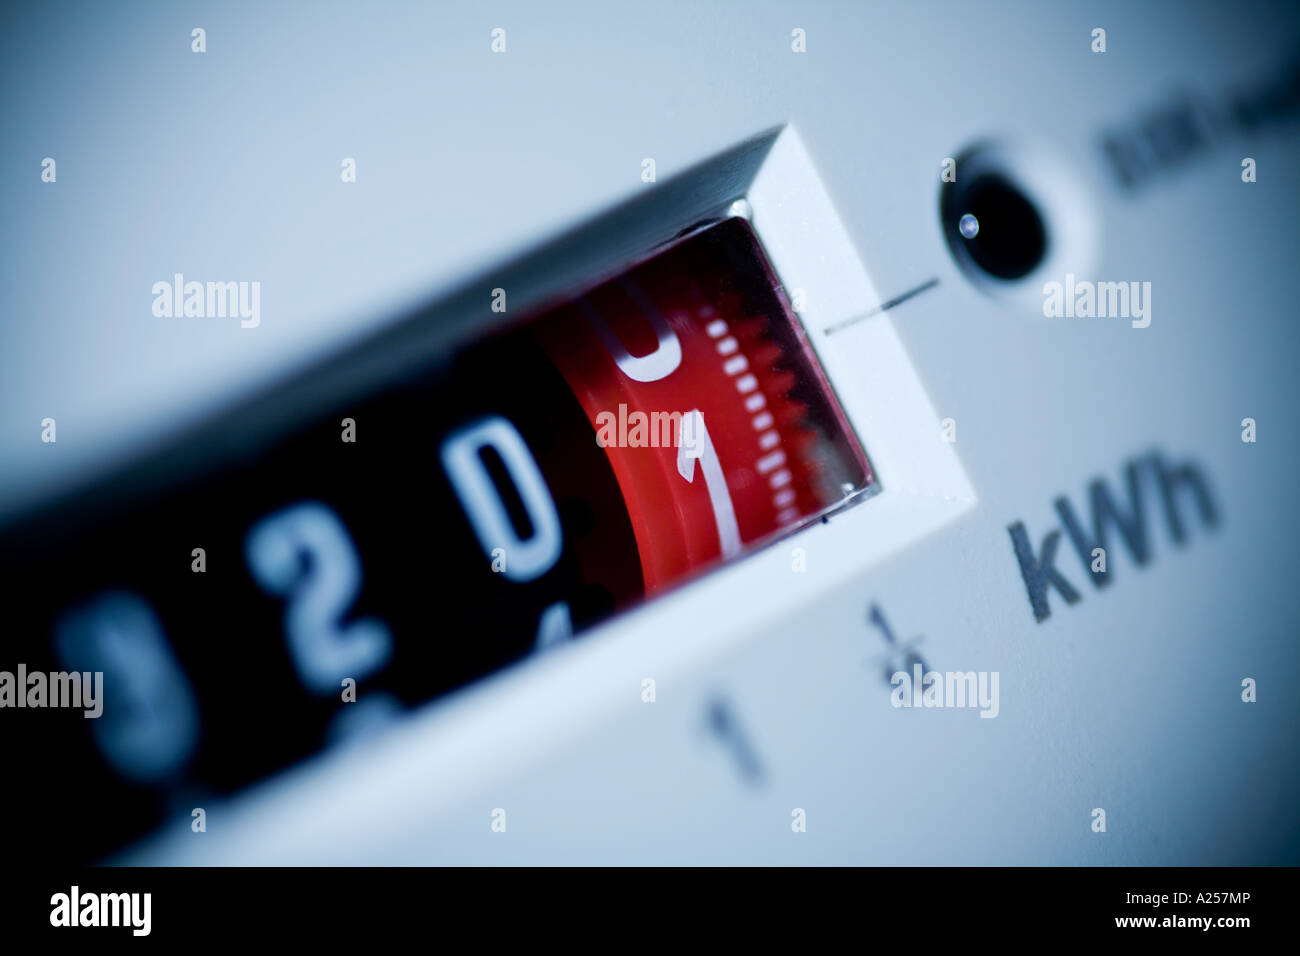 Electricity meter Stock Photo